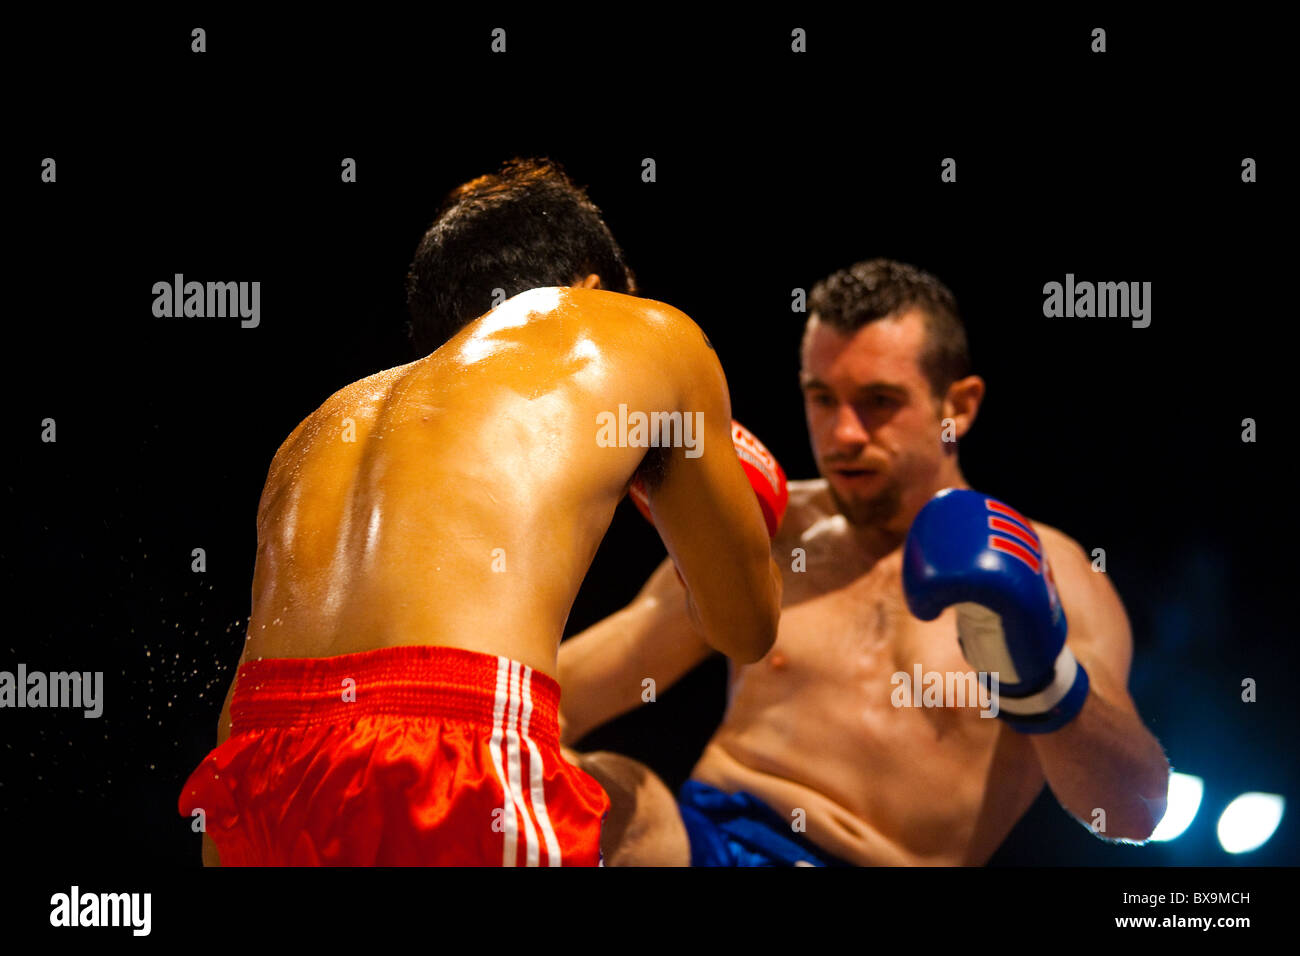 Caucasian kick to the ribs sending perspiration flying off the back of muay thai fighter - Stock Image